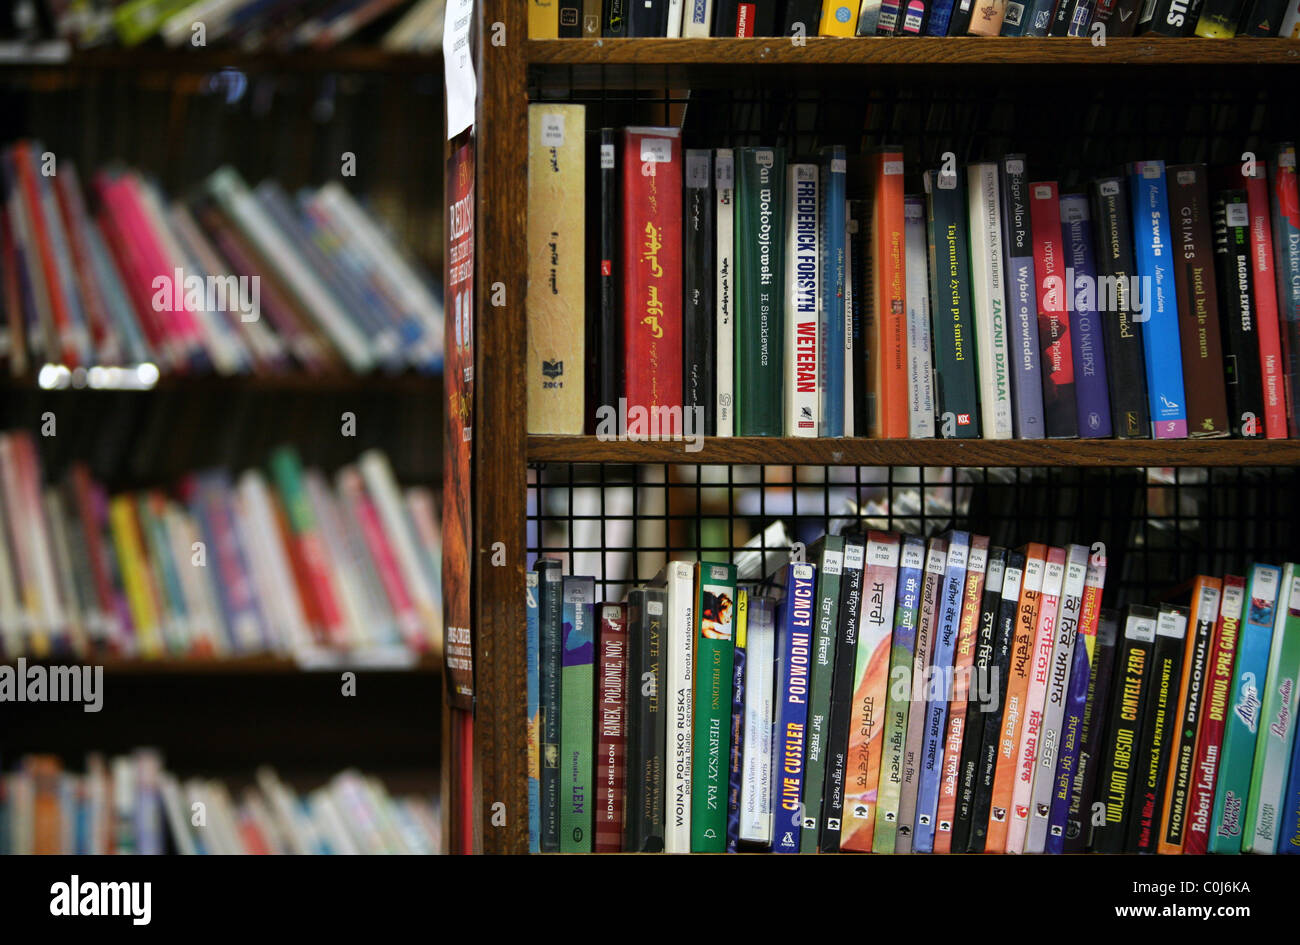 Library books in a UK public library. - Stock Image